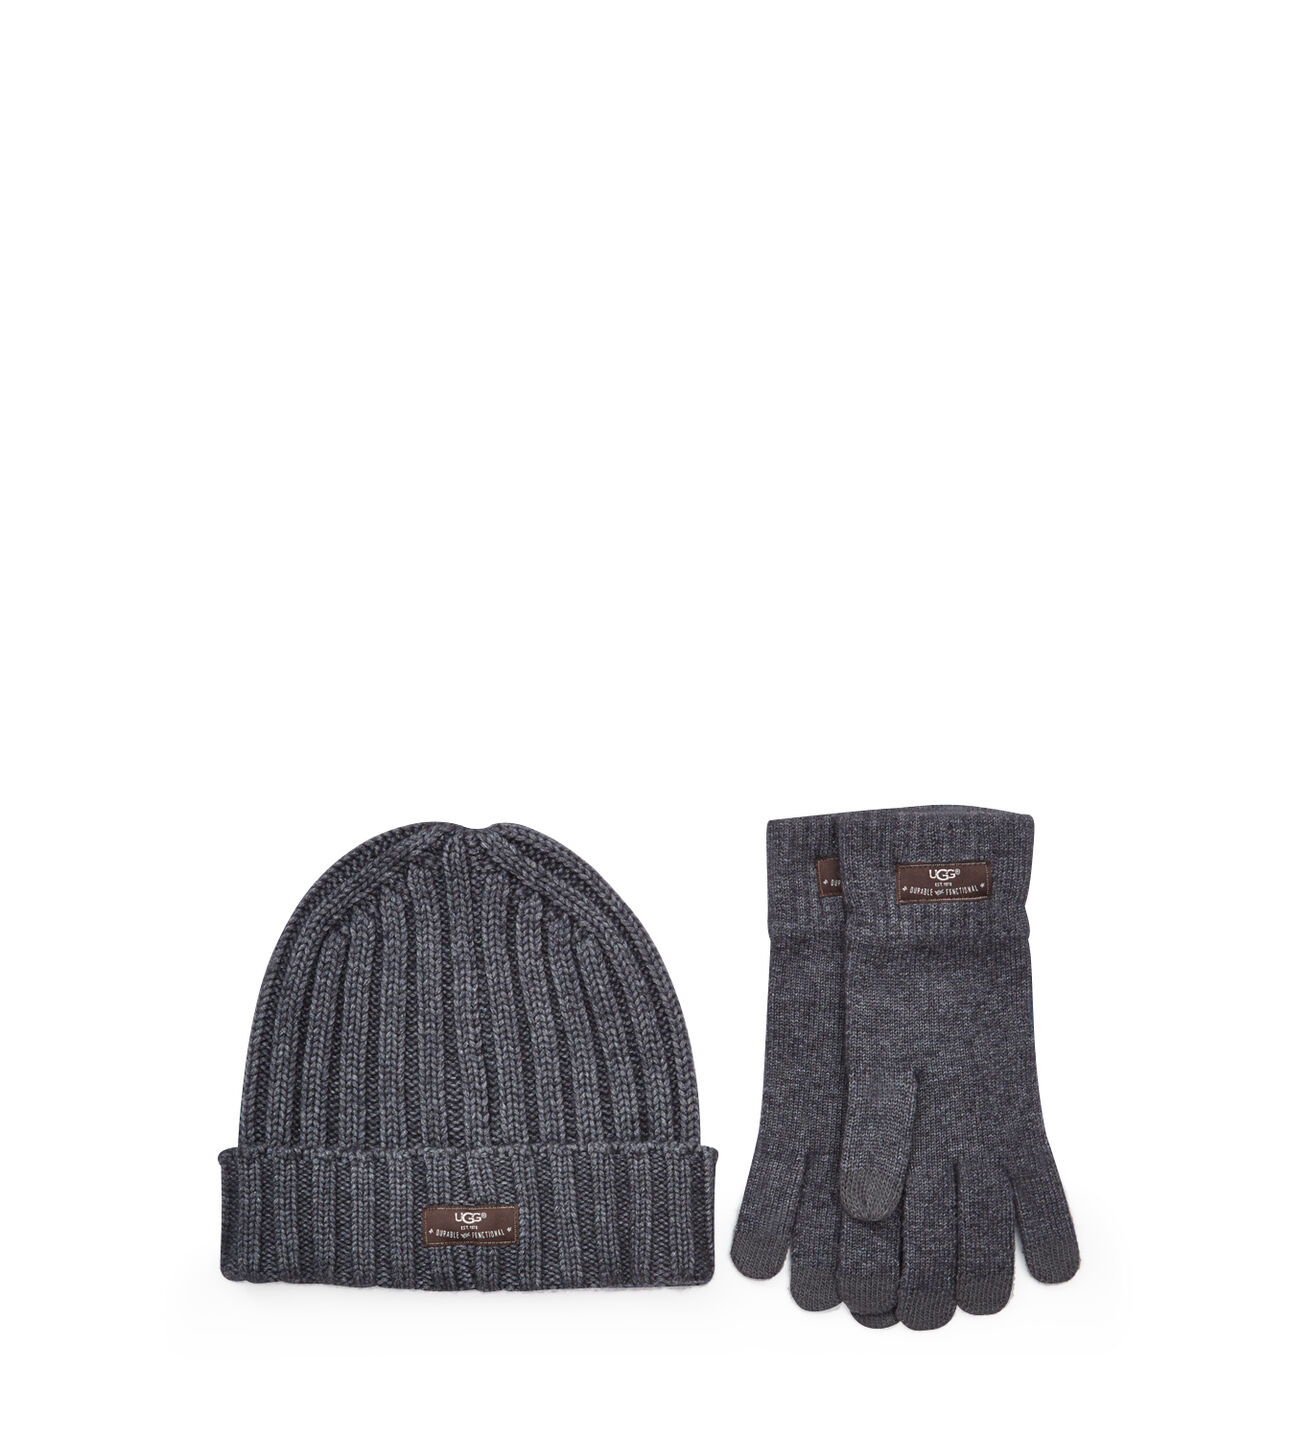 uggs hats and gloves